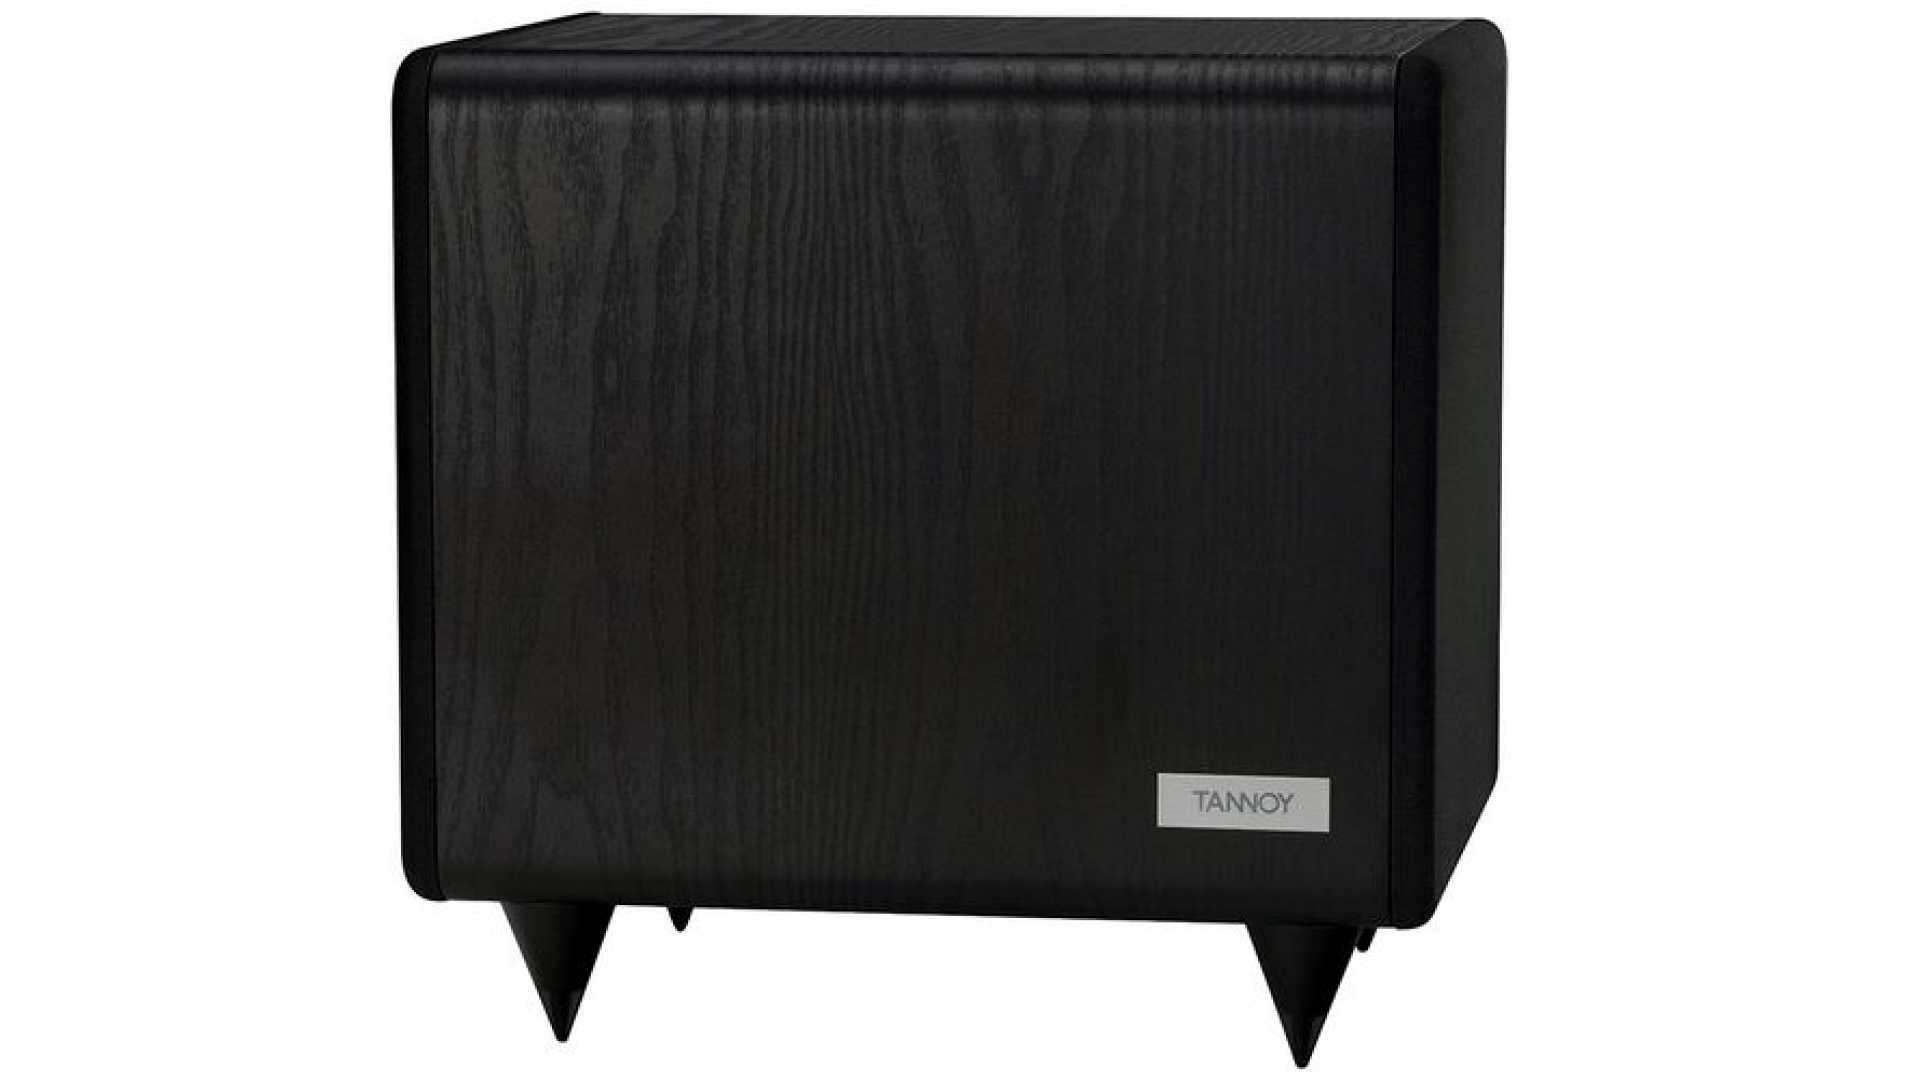 Tannoy TS2.8 Subwoofer